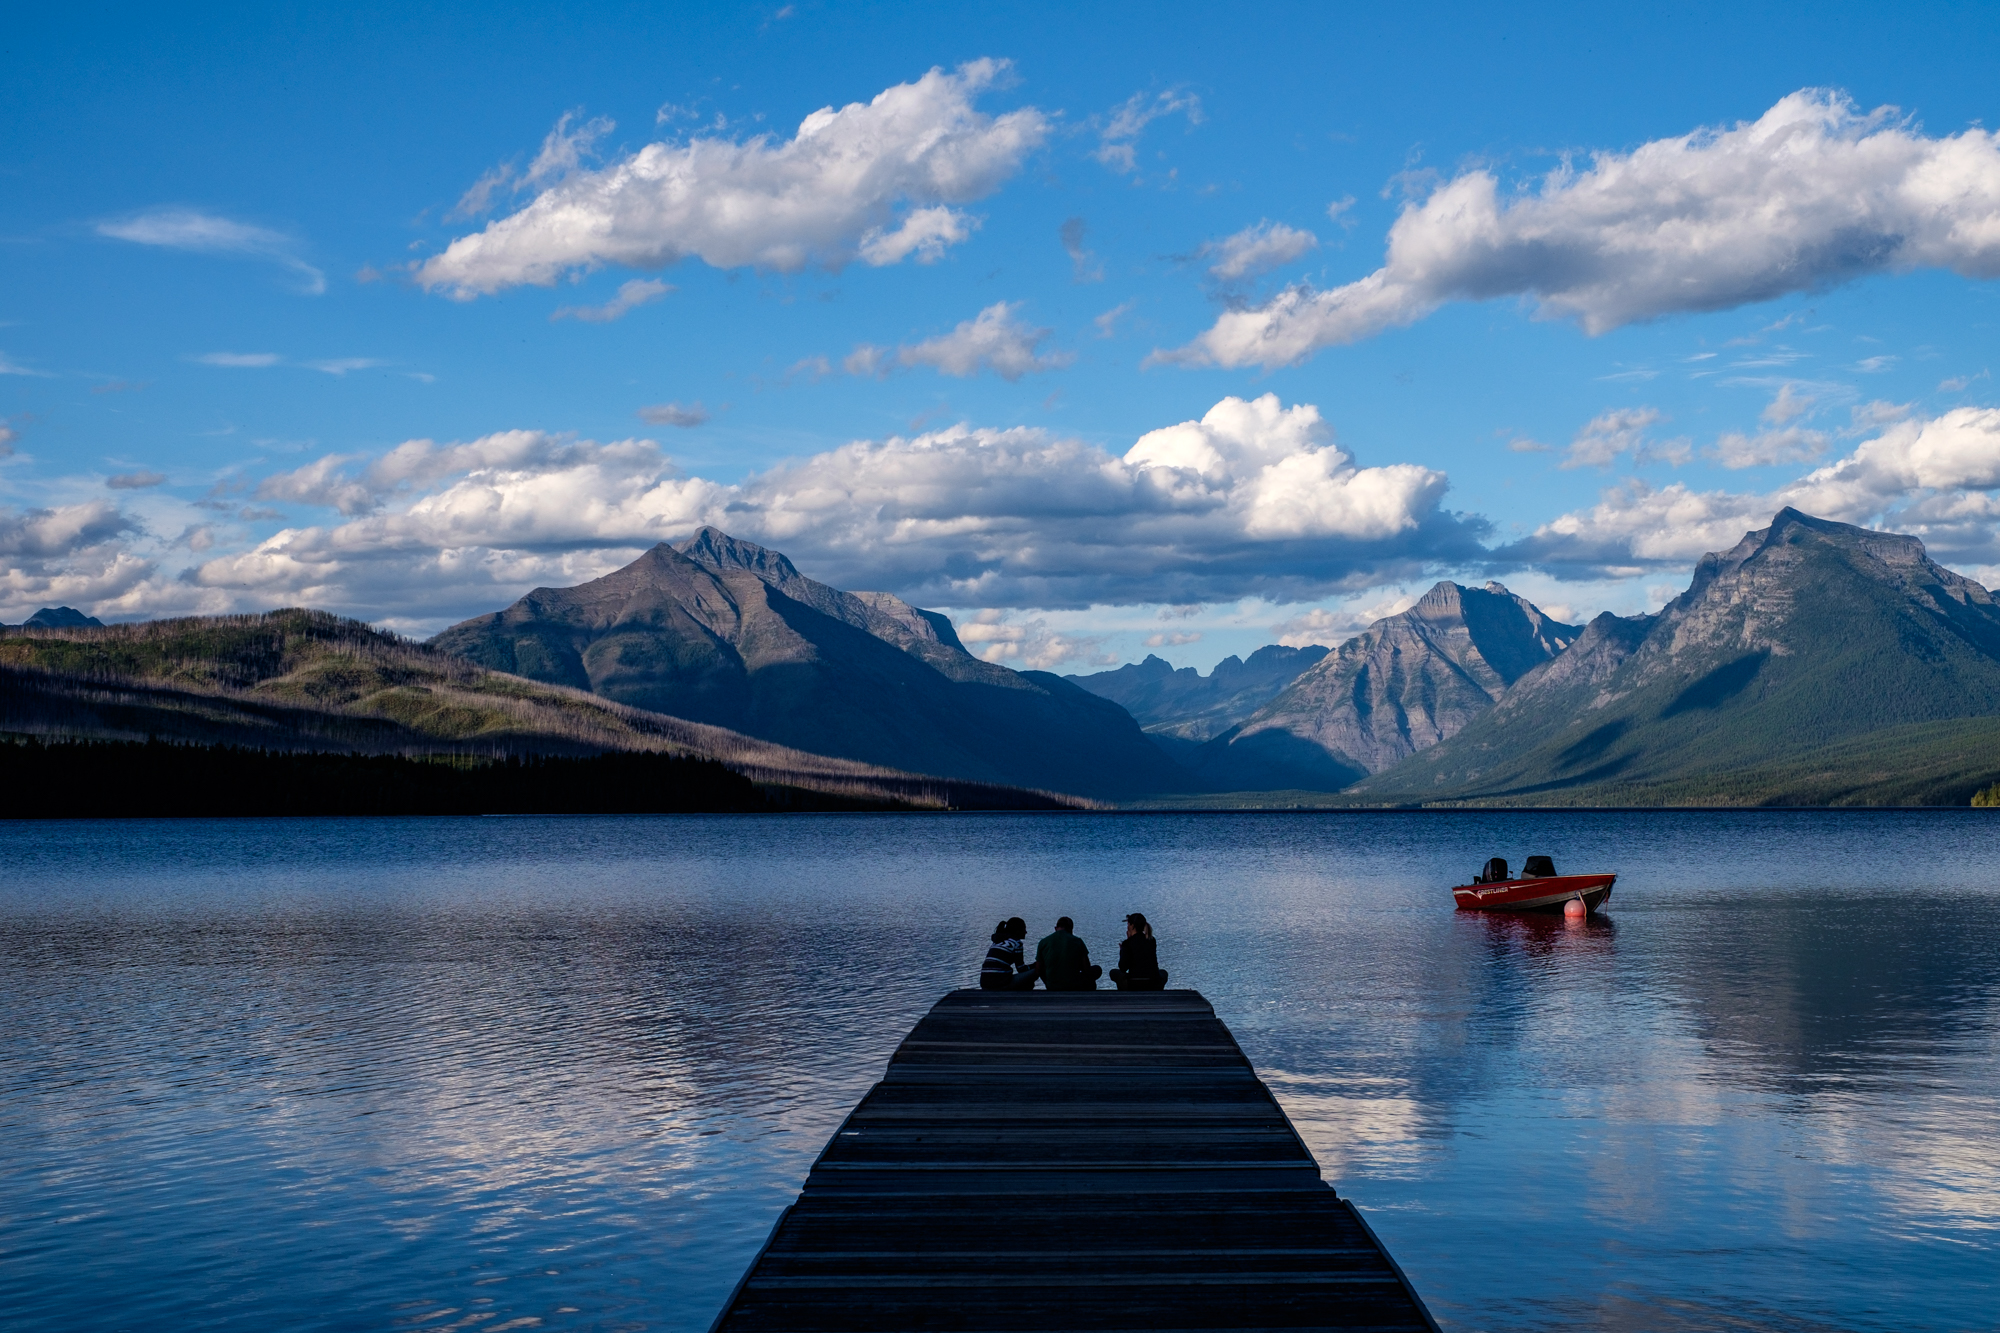 Friends gather to take in the views on a dock at McDonald Lake, the largest lake in the park.